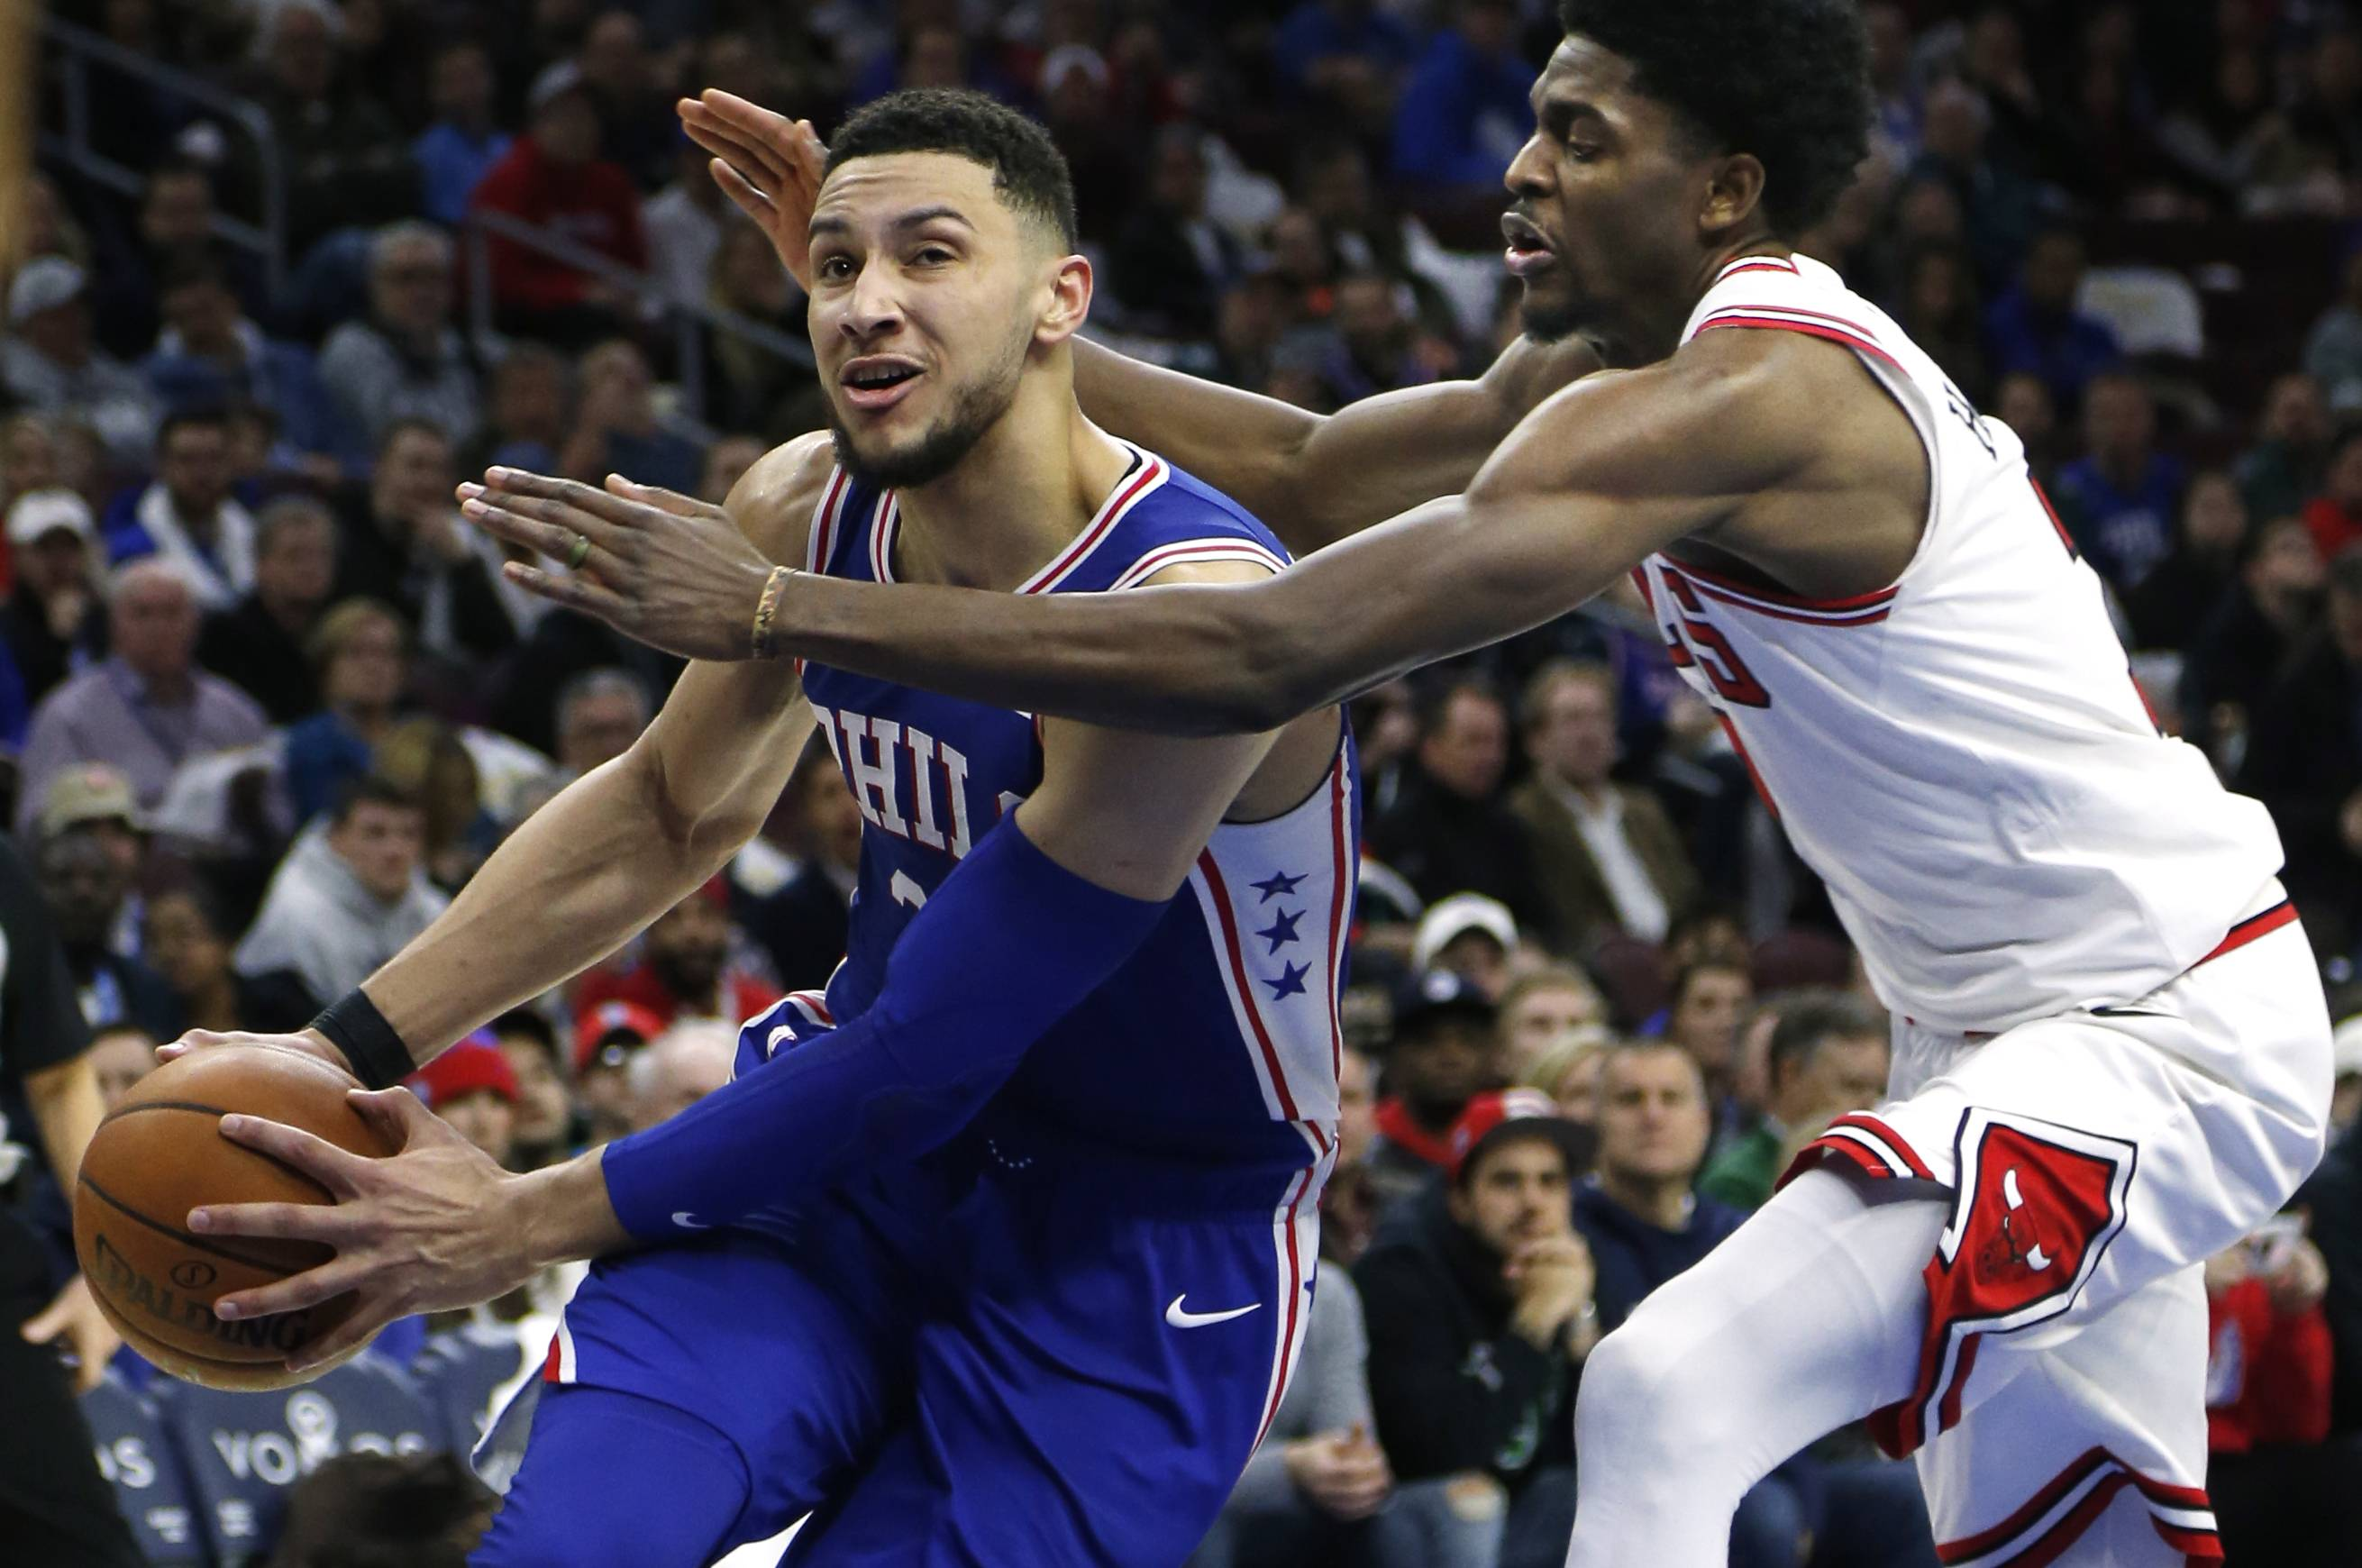 Chicago Bulls start slowly, then can't stop Simmons in loss to Sixers